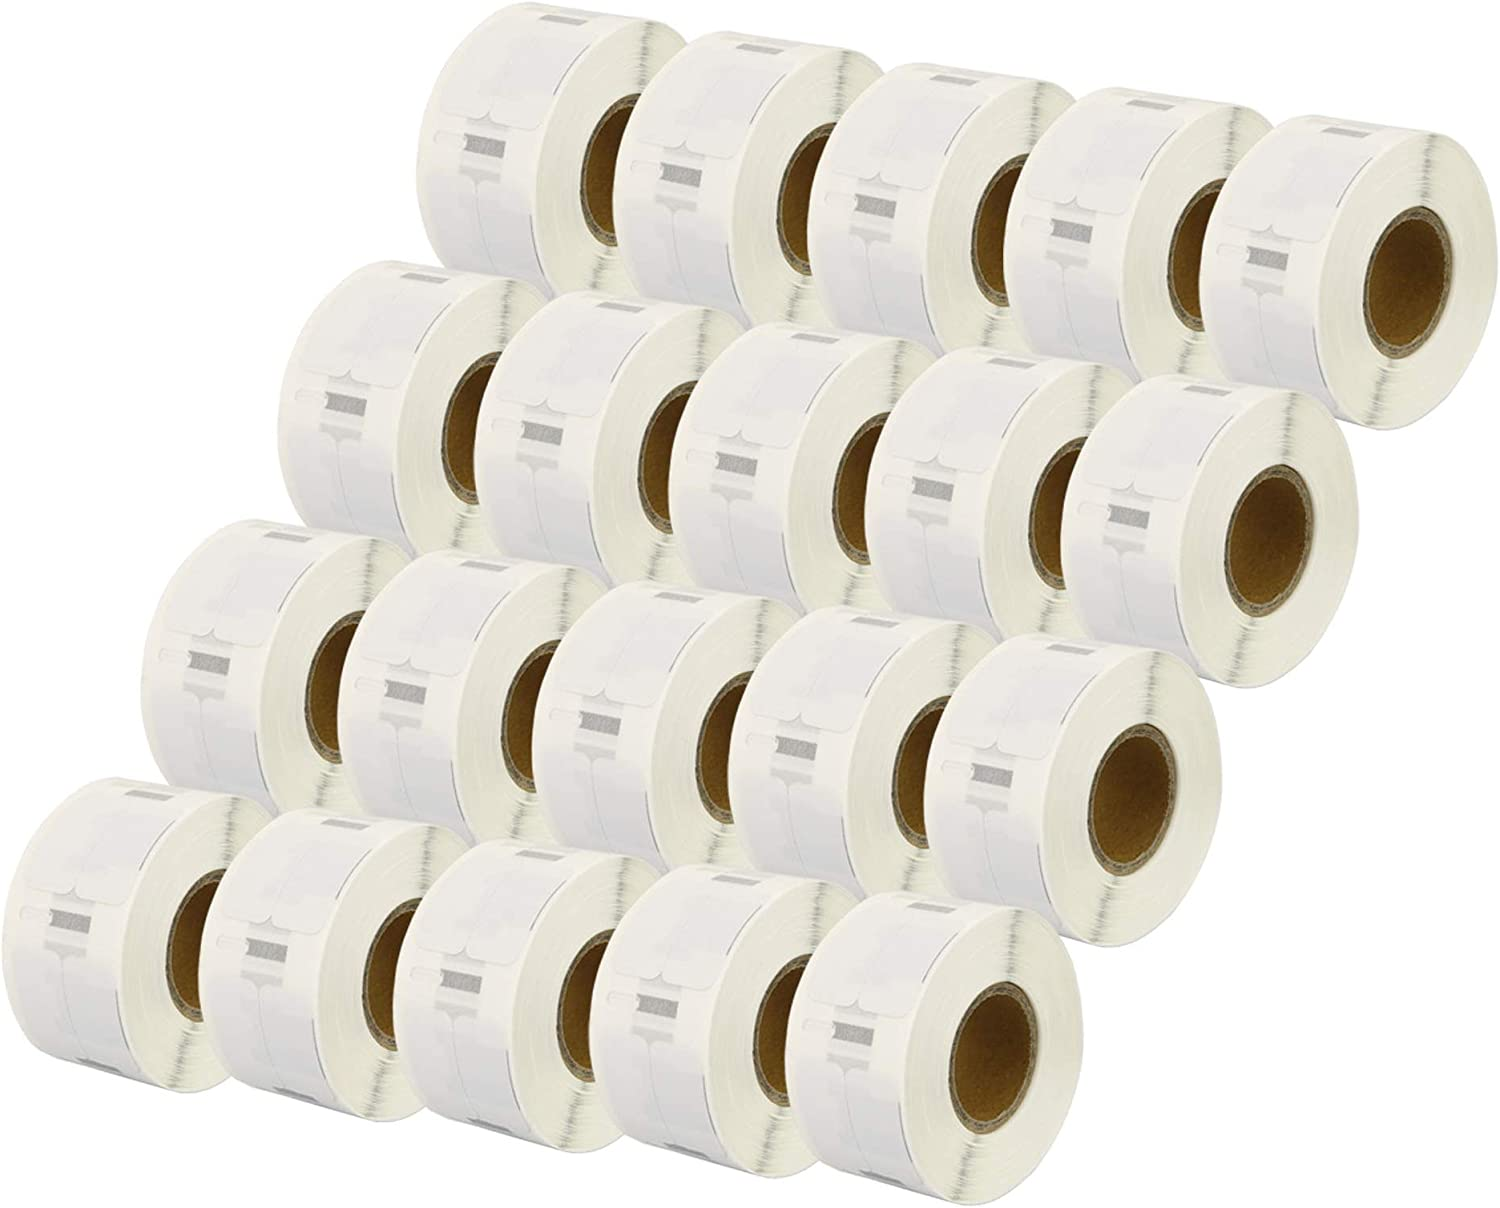 Printing Saver 20x 11353 12 x 24 mm Compatible Multipurpose Labels Rolls (1000 Labels per Roll) for Dymo LabelWriter 310 320 330 4XL 400 450 Turbo/Twin Turbo/Duo & Seiko SLP Label Printers